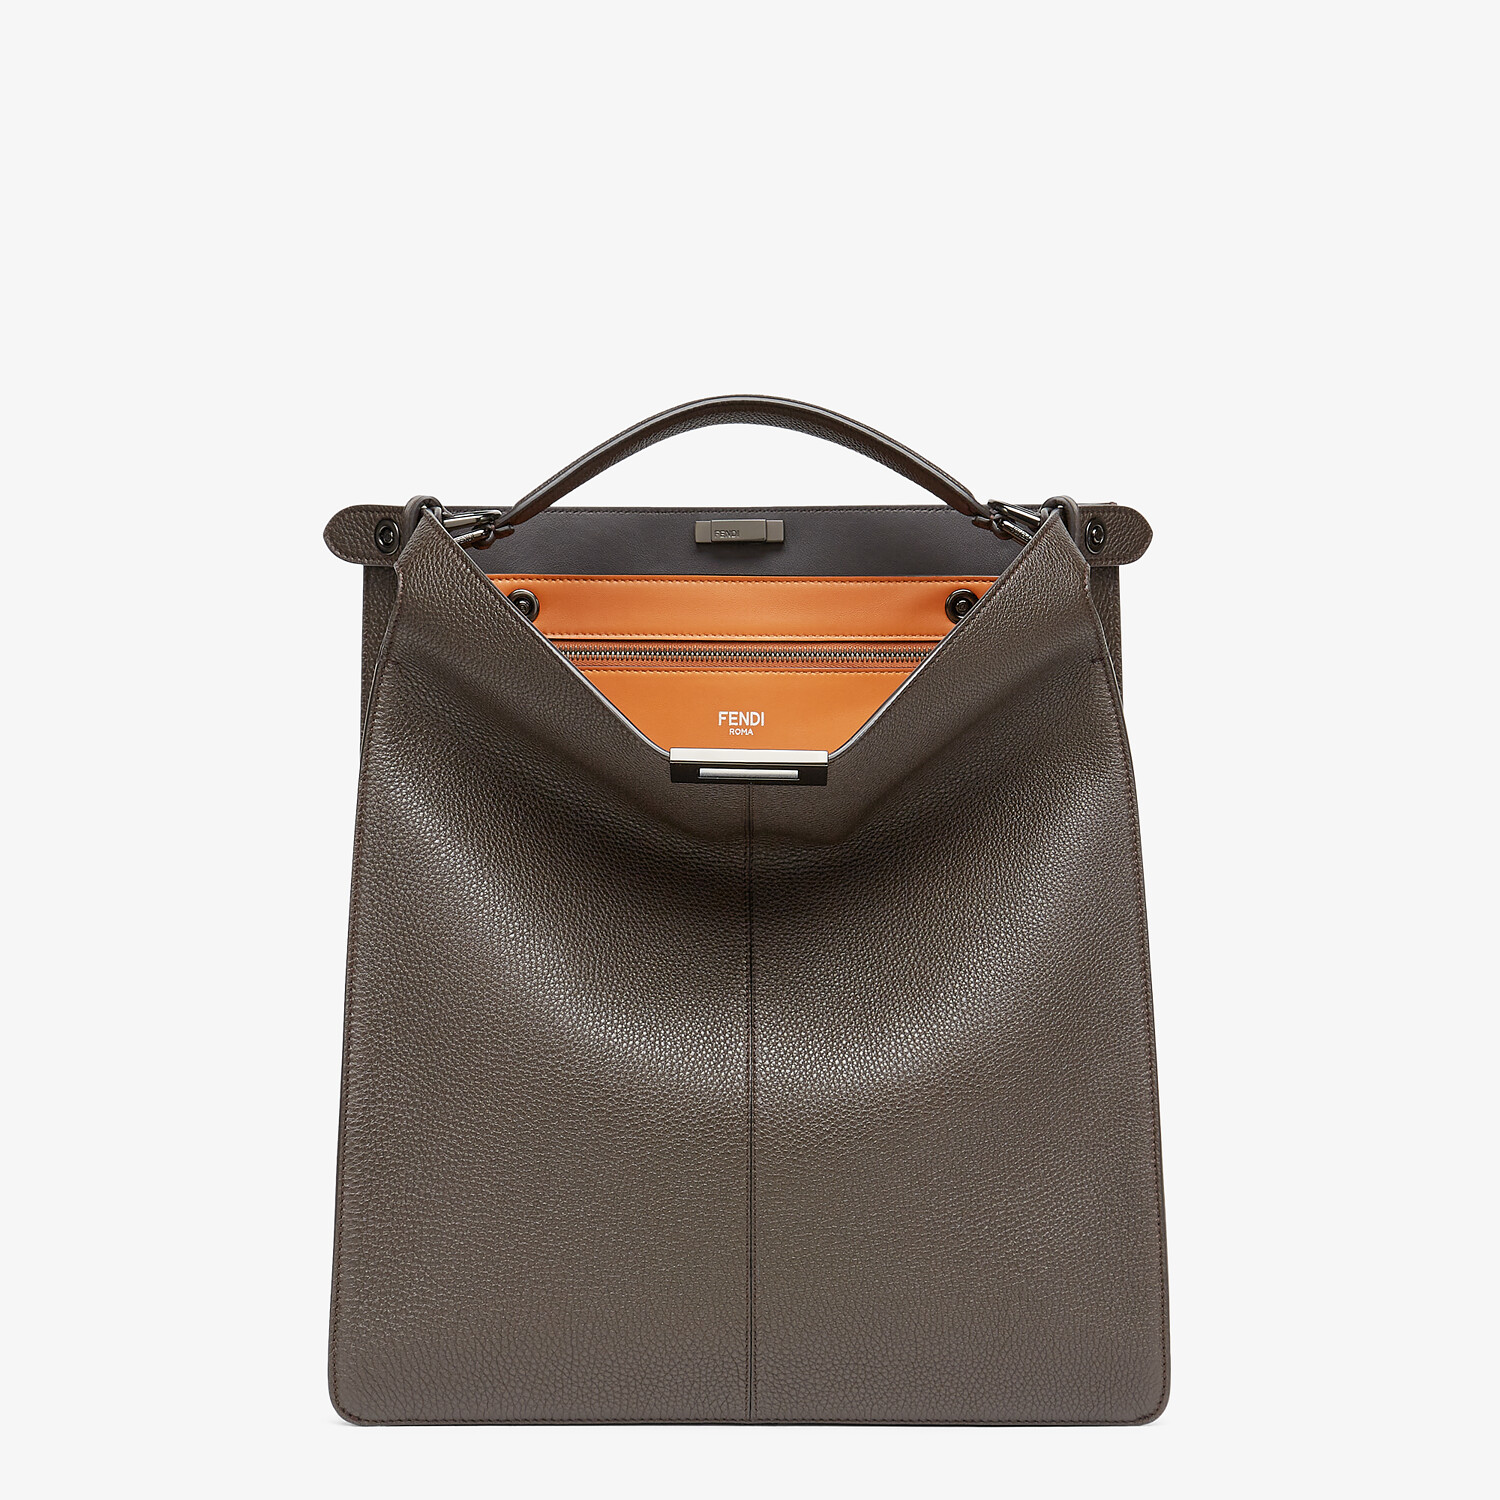 FENDI PEEKABOO ISEEU TOTE - Brown leather bag - view 2 detail